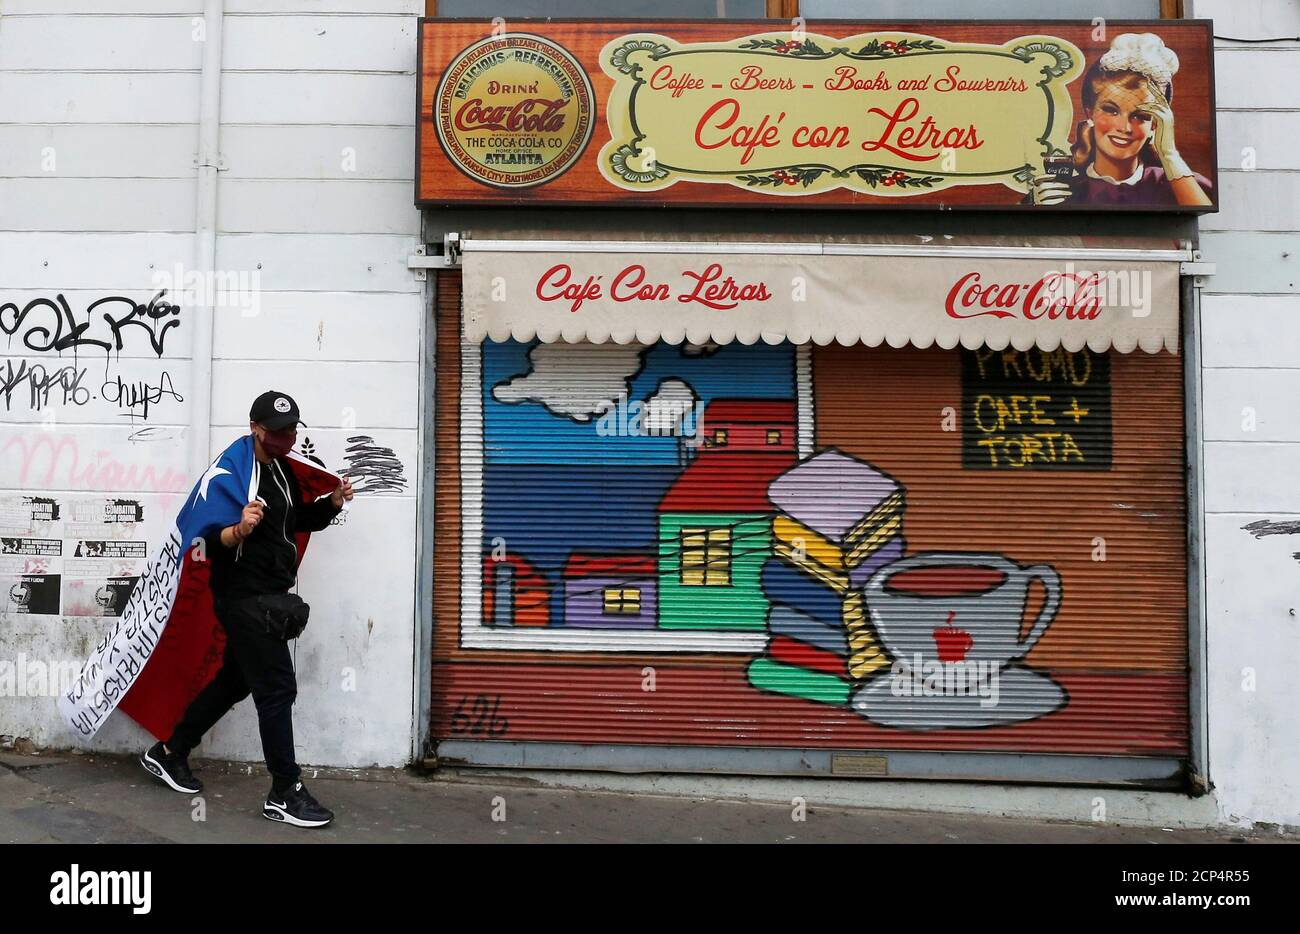 A waiter walks next to a cafe closed after losing his job due to the mandatory closure of all restaurants, cafes and bars as a precaution against the spread of the coronavirus disease (COVID-19) in Valparaiso, Chile  April 9, 2020. Picture taken April 9, 2020.  REUTERS/Rodrigo Garrido Stock Photo